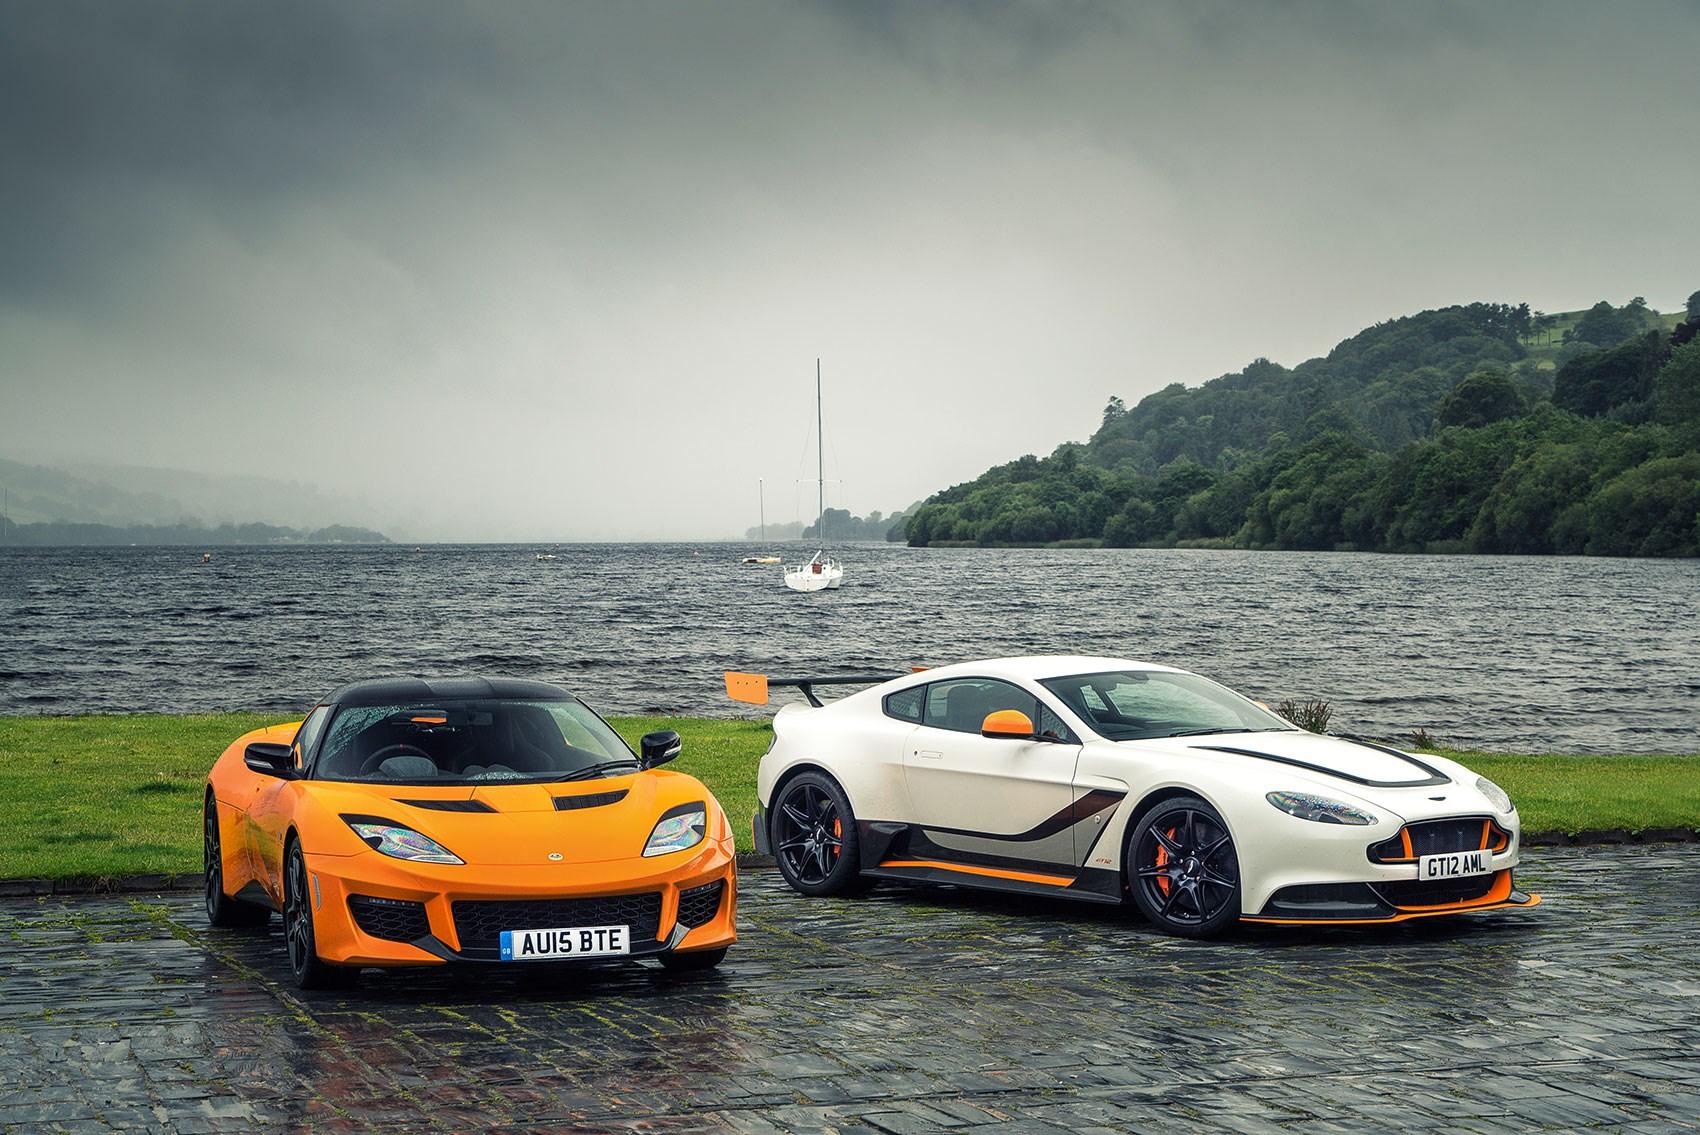 25 British Cars To Drive Before You Die 20 21 Aston Martin Gt12 And Lotus Evora 400 Car September 2015 Car Magazine